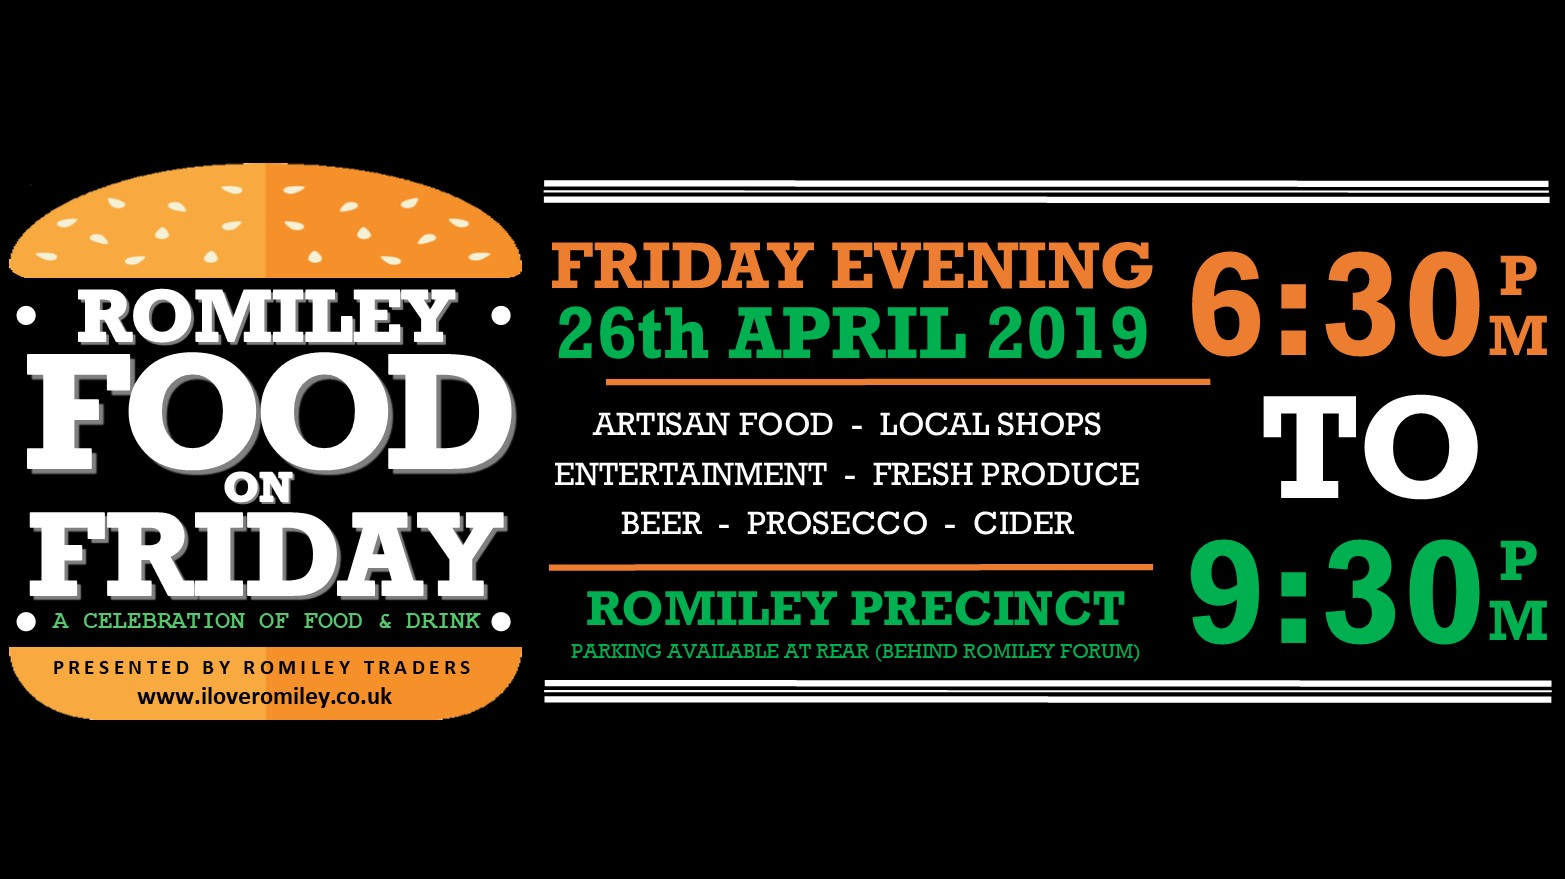 Romiley Food on Friday